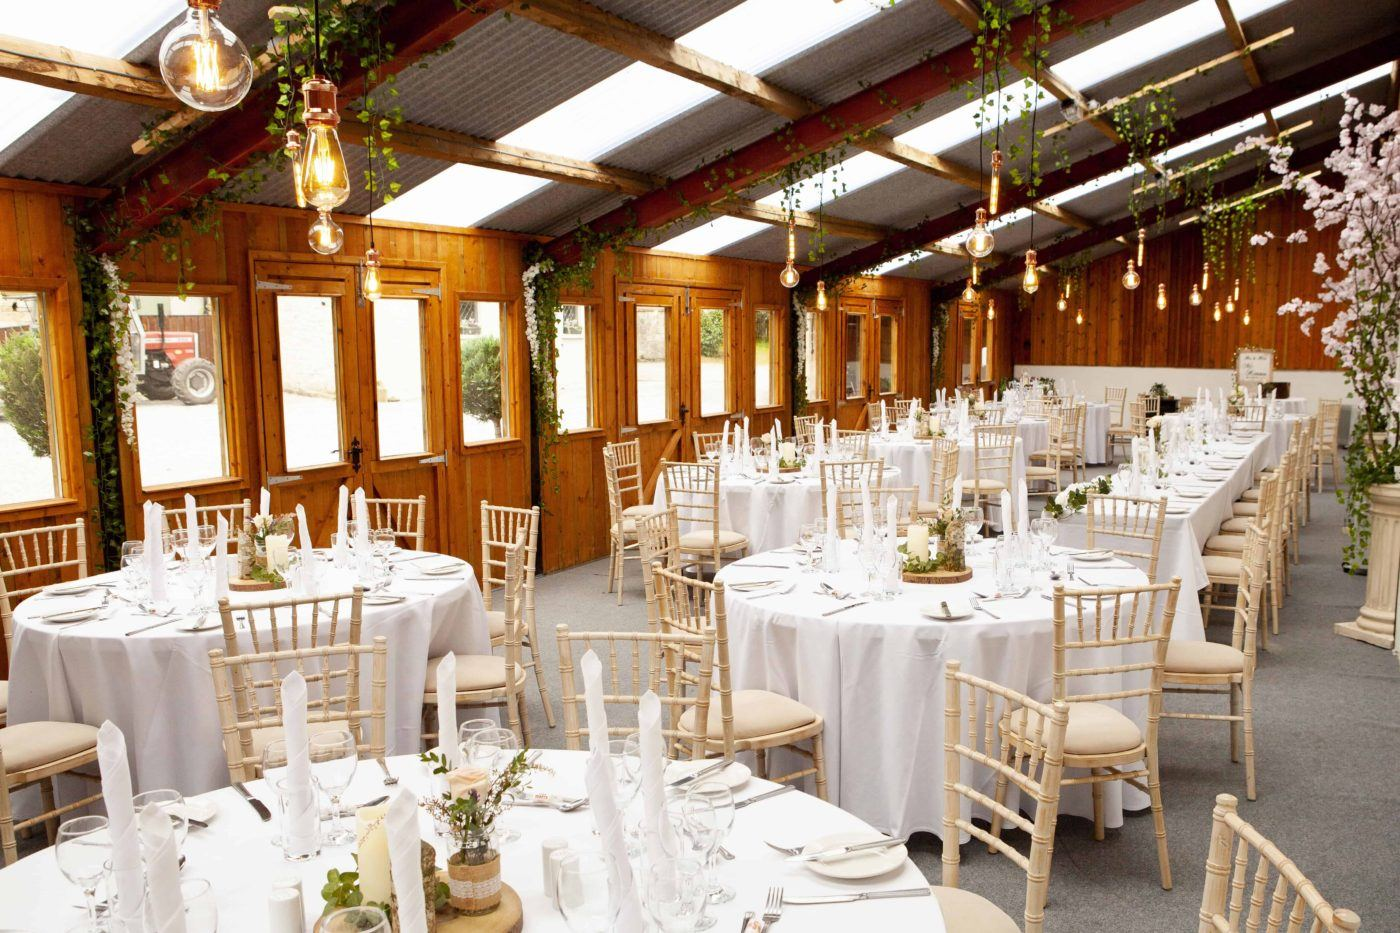 Long Barn decorated for a wedding reception at Blessingbourne estate